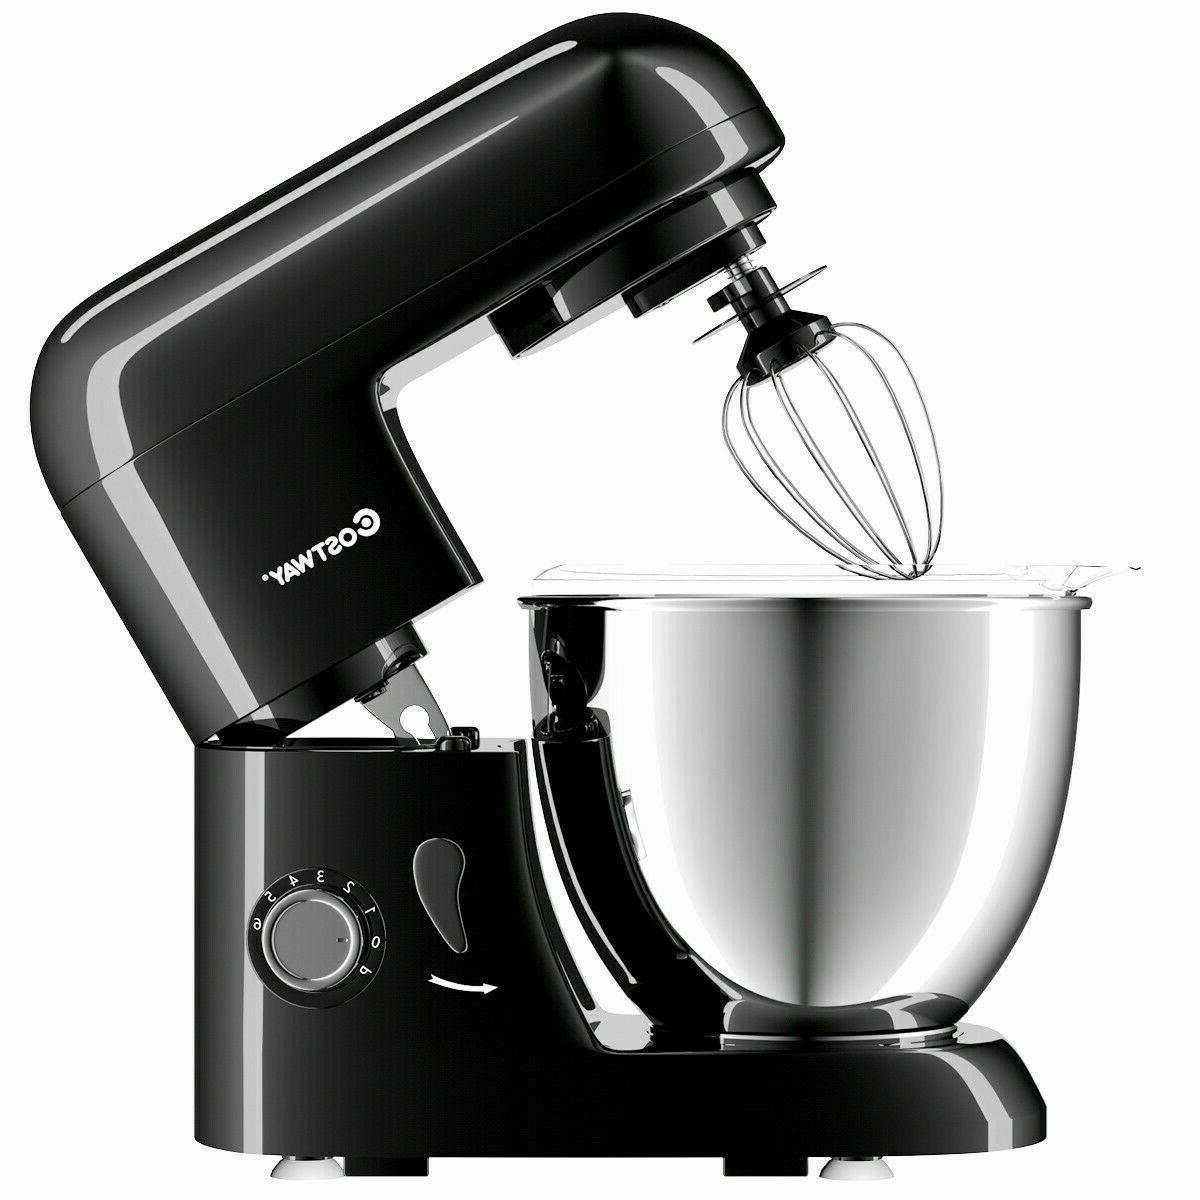 LargeElectric Food Stand Mixer 6 Speed 4.3Qt Tilt-Head Stainless Bowl